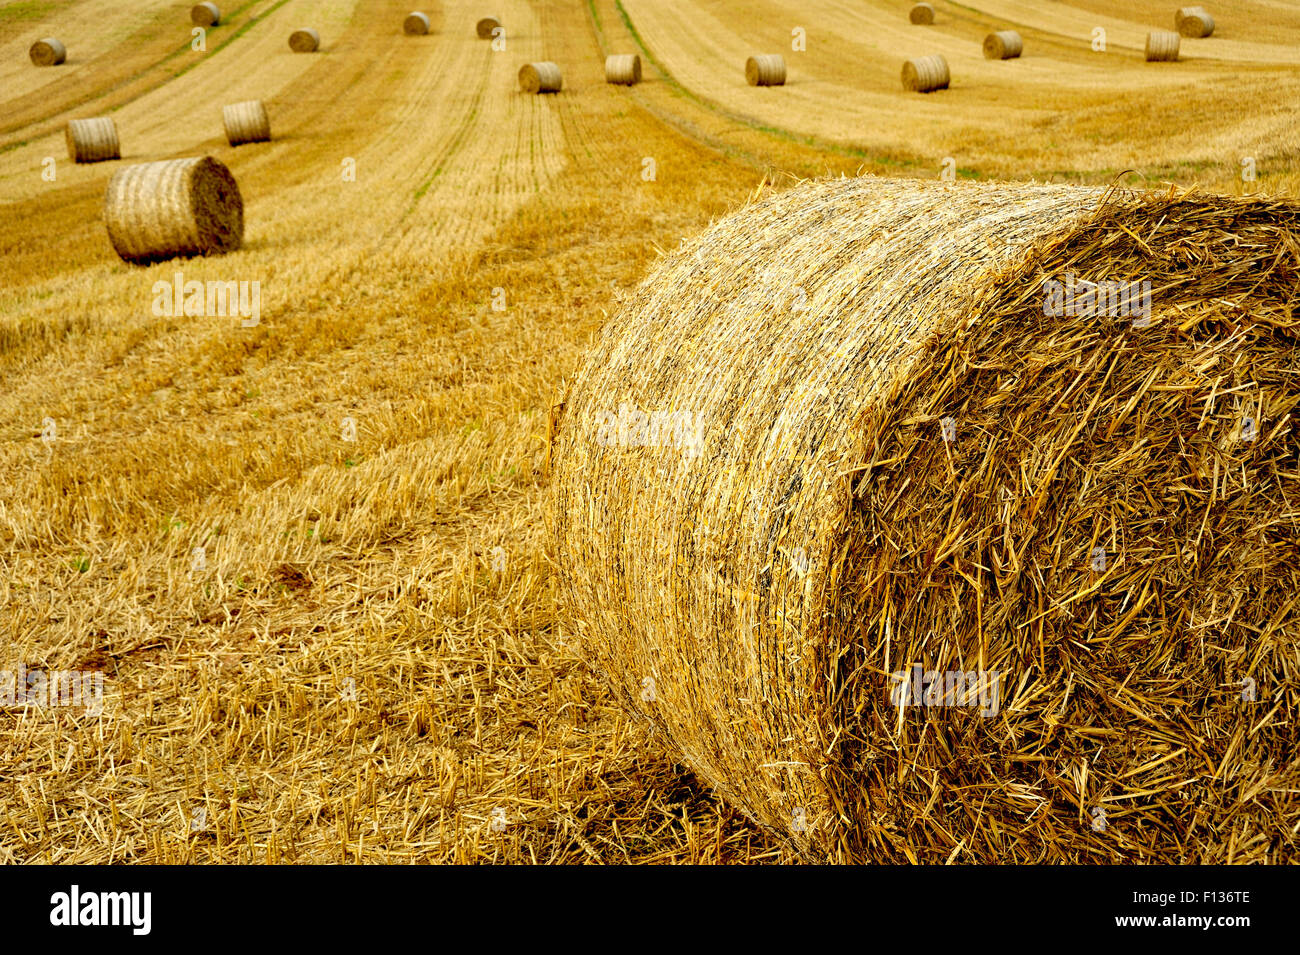 STRAW BALES IN FIELD IN DEVON UK - Stock Image